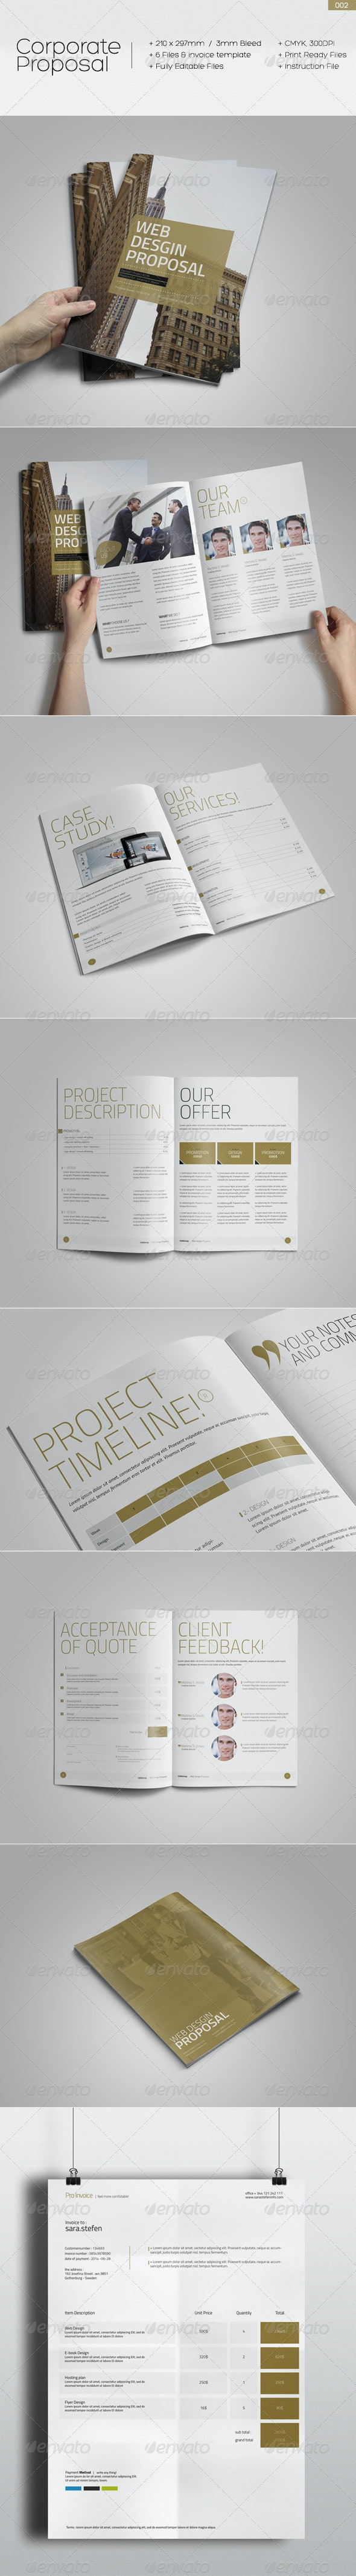 Corporate Proposal 002 - Proposals & Invoices Stationery